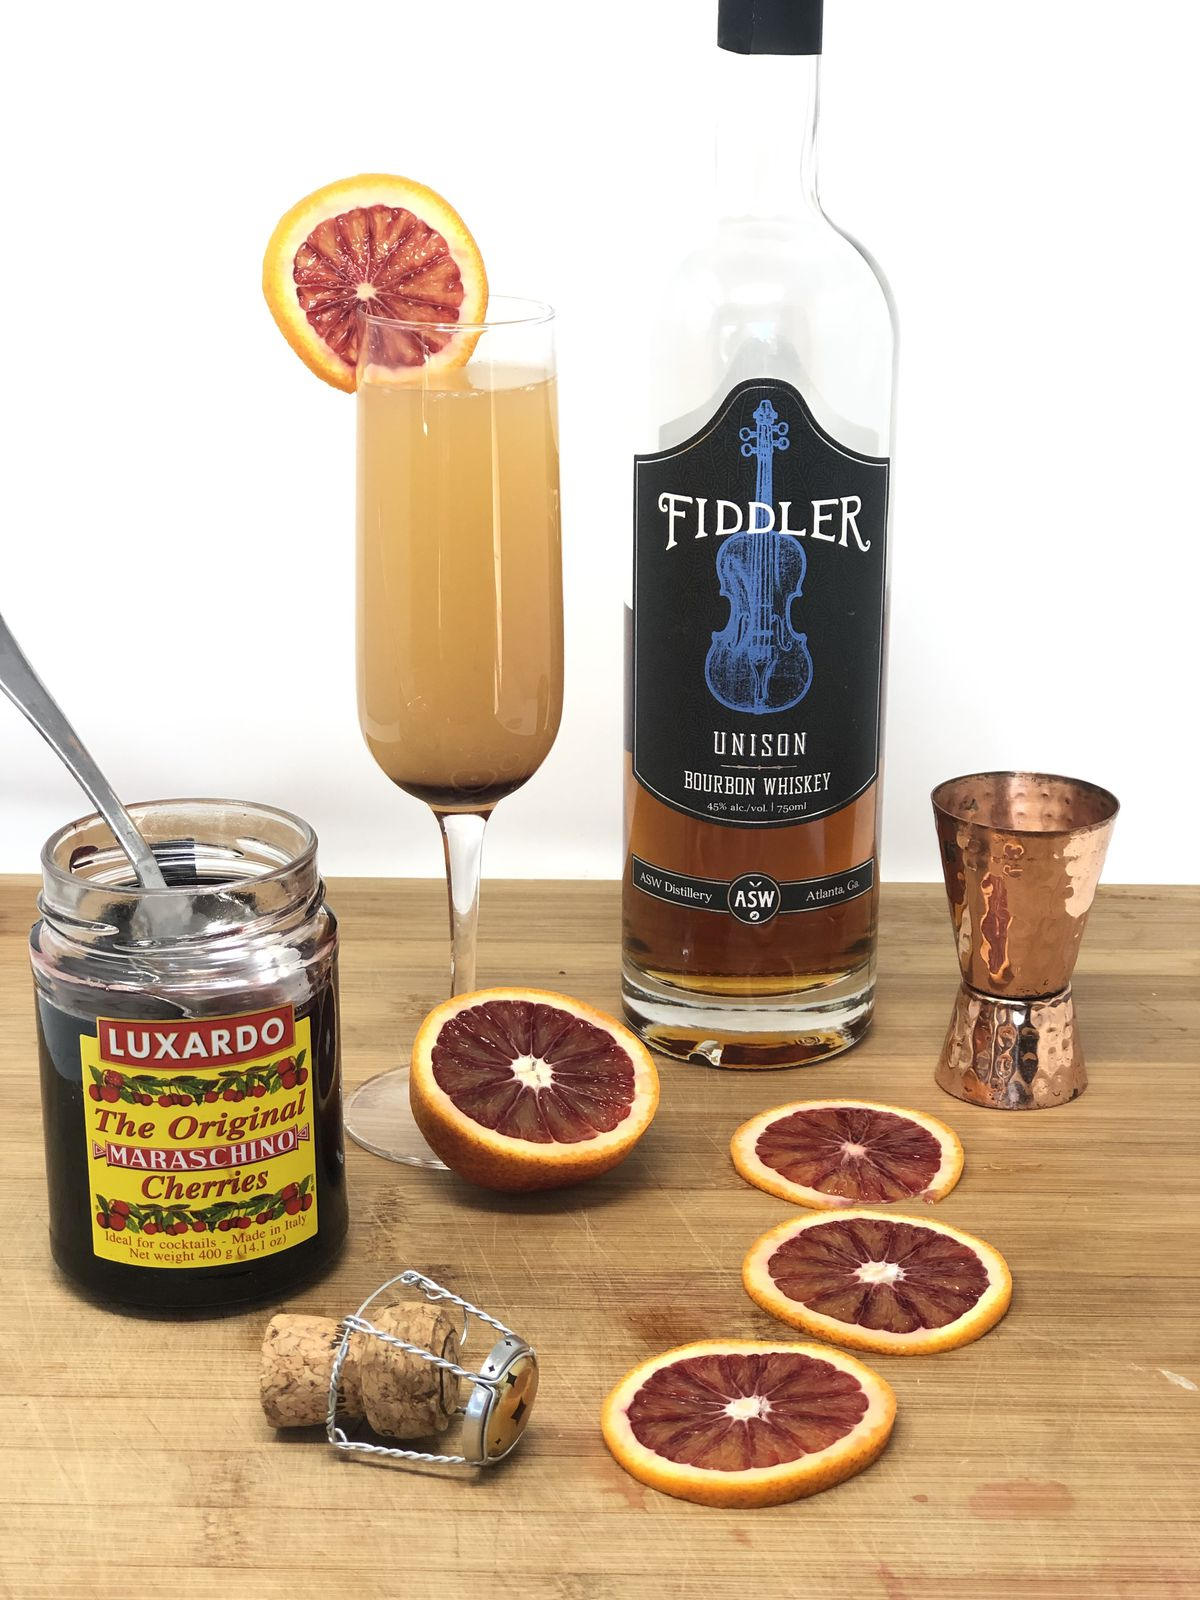 Old Fashioned mimosa using ASW Distillery's Fiddler bourbon at Buttermilk Kitchen